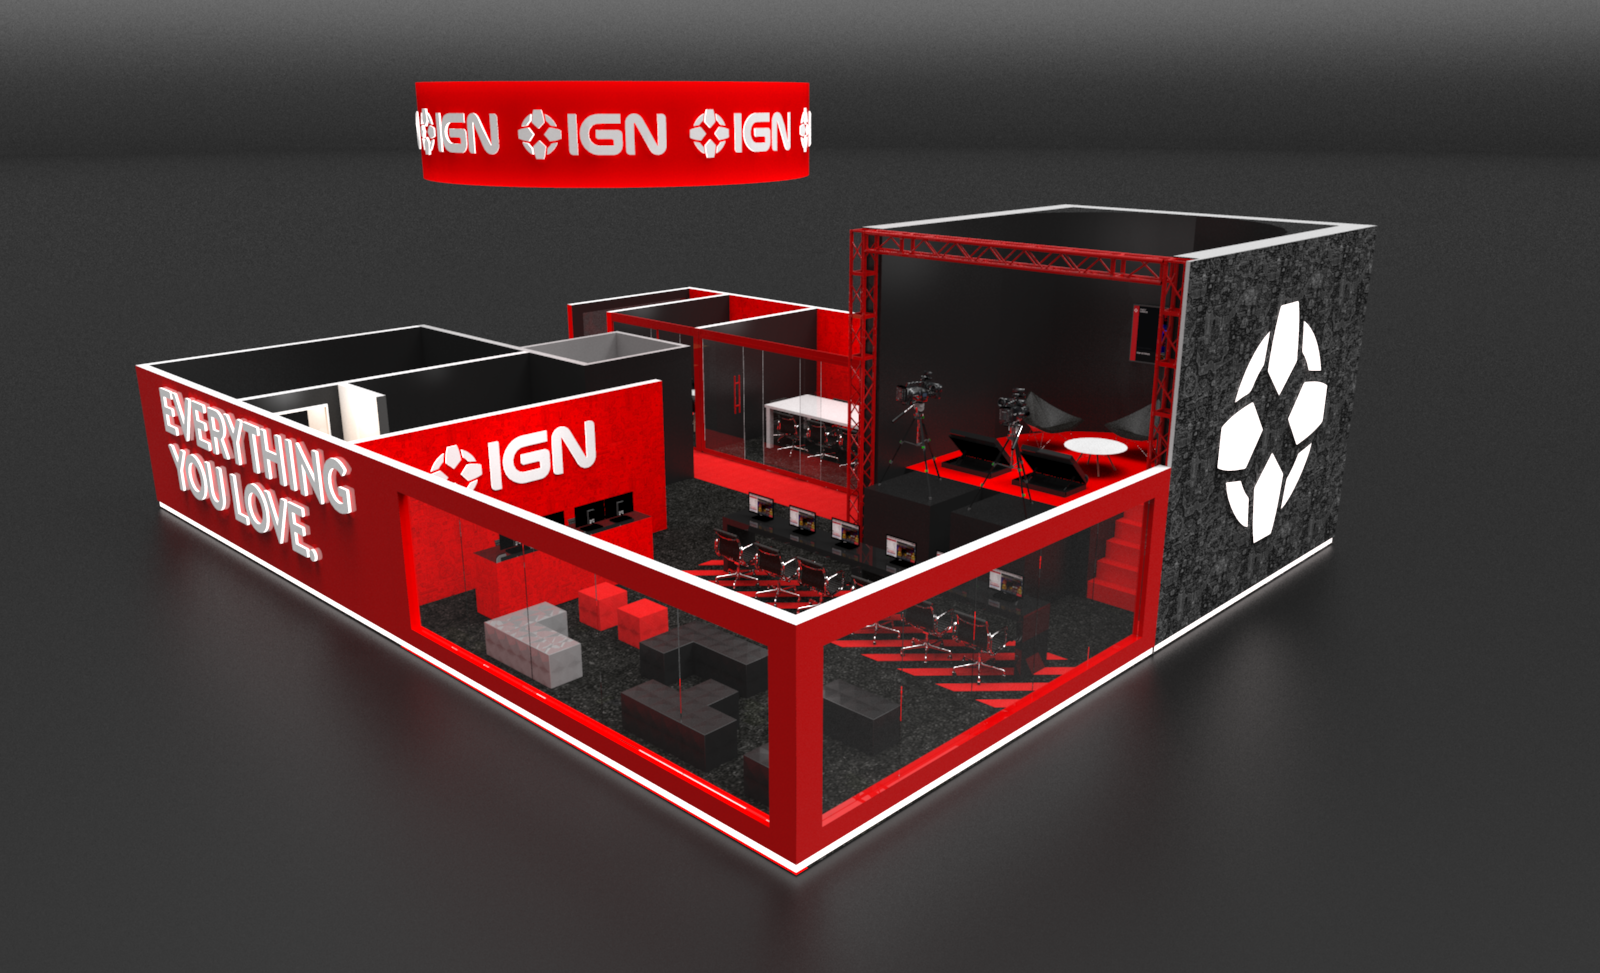 IGN_E3_Booth_R3_Opt2.69